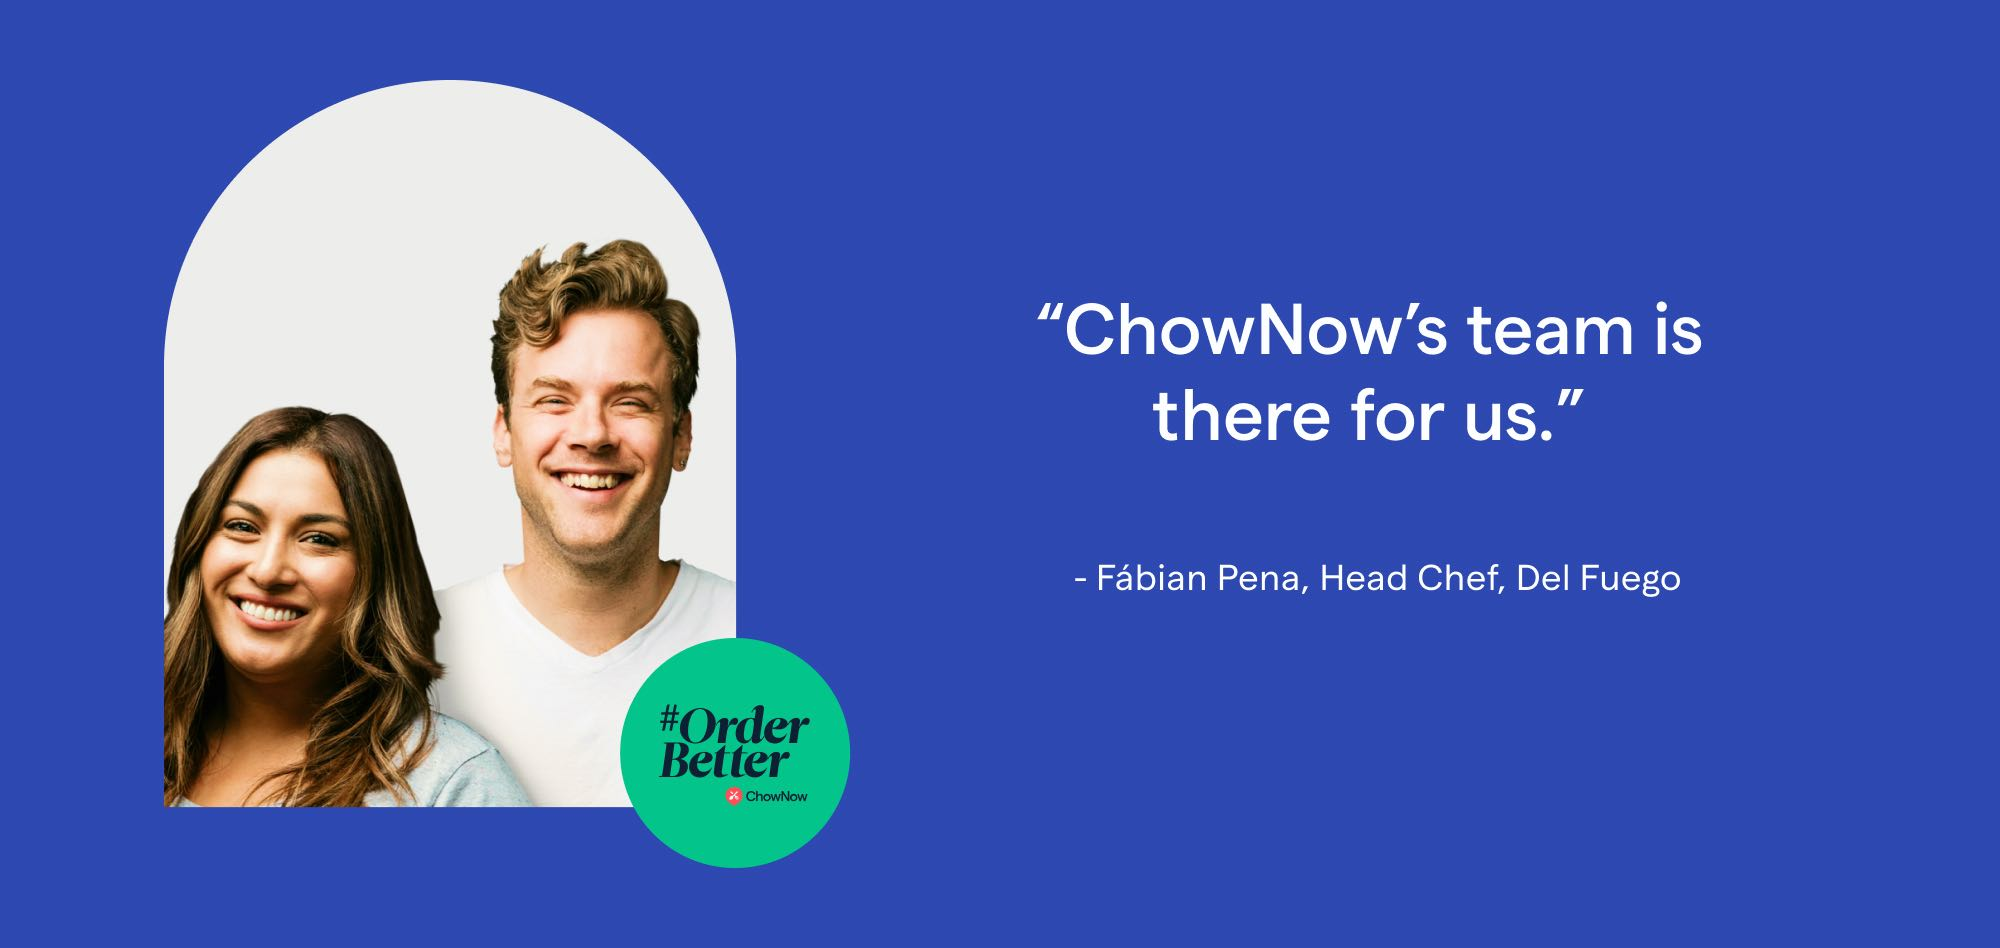 A quote from Del Fuego - ChowNow's team is there for us.